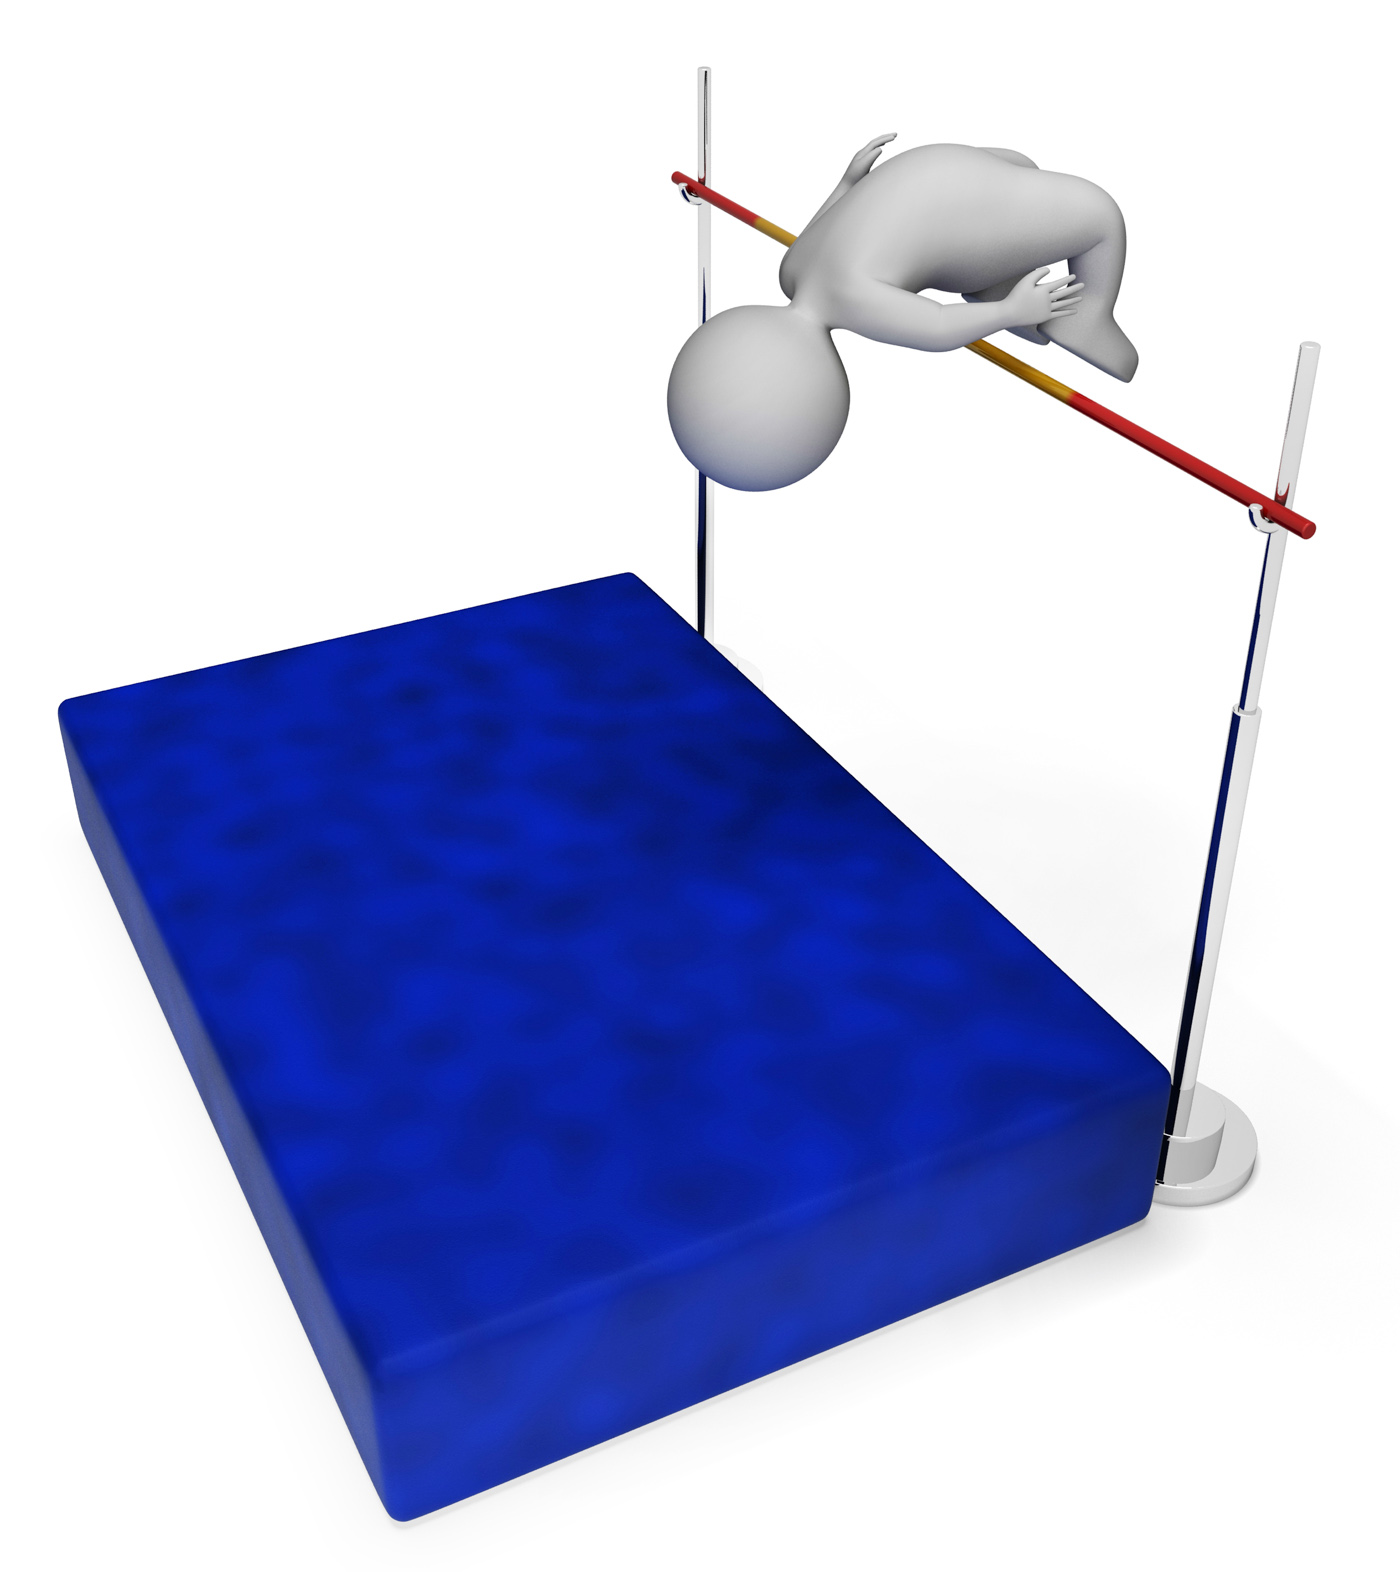 High jump means pole vault and athletic 3d rendering photo